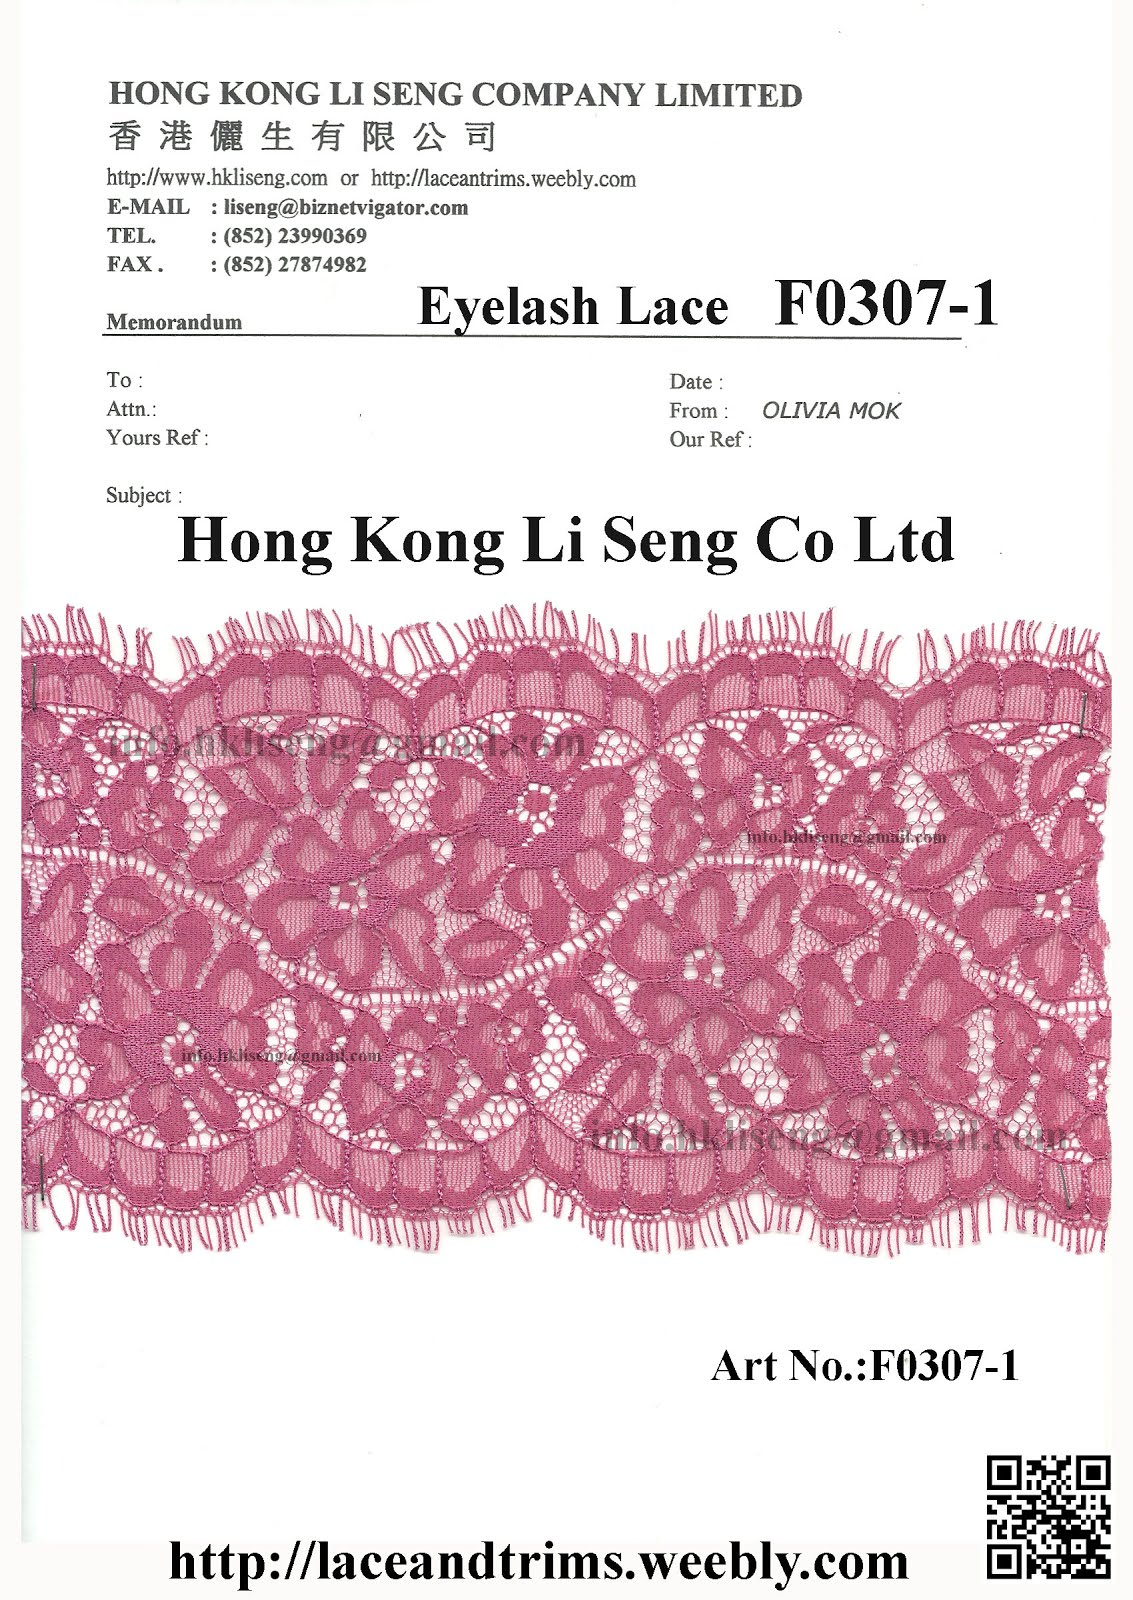 New Eyelash Lace Pattern for All Kind Textile and Apparel Industry